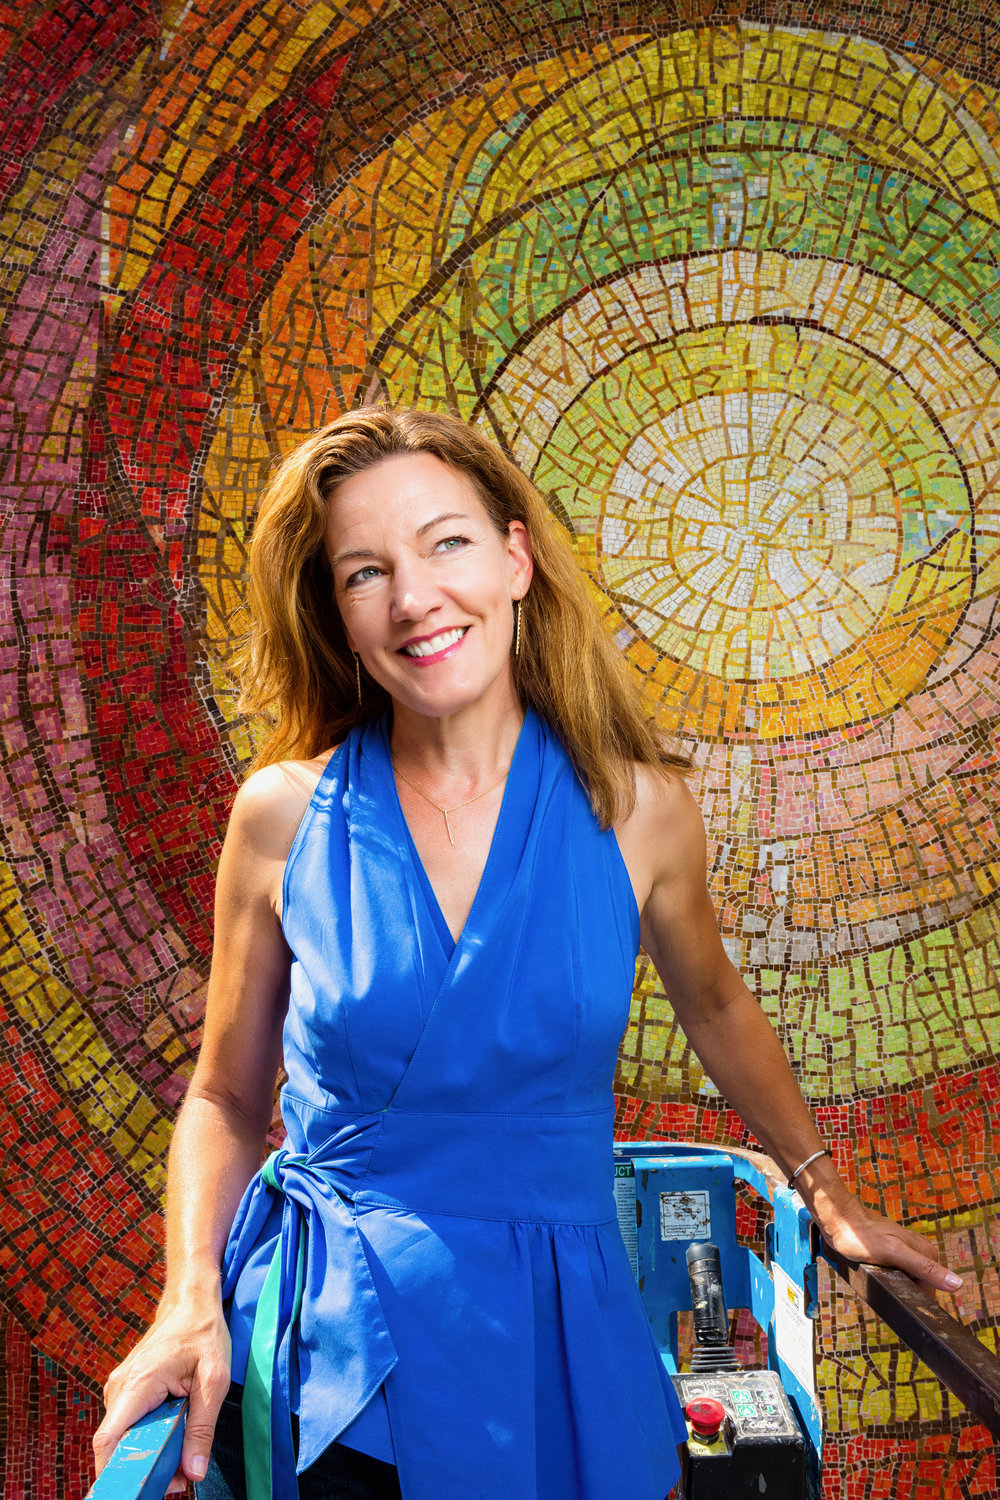 Julie pictured with the Gyorgy Kepes-designed mosaic at St. Jude Chapel in Dallas during restoration in June, 2017. Photo courtesy of Danny Fulgencio, DannyFulgencio.com